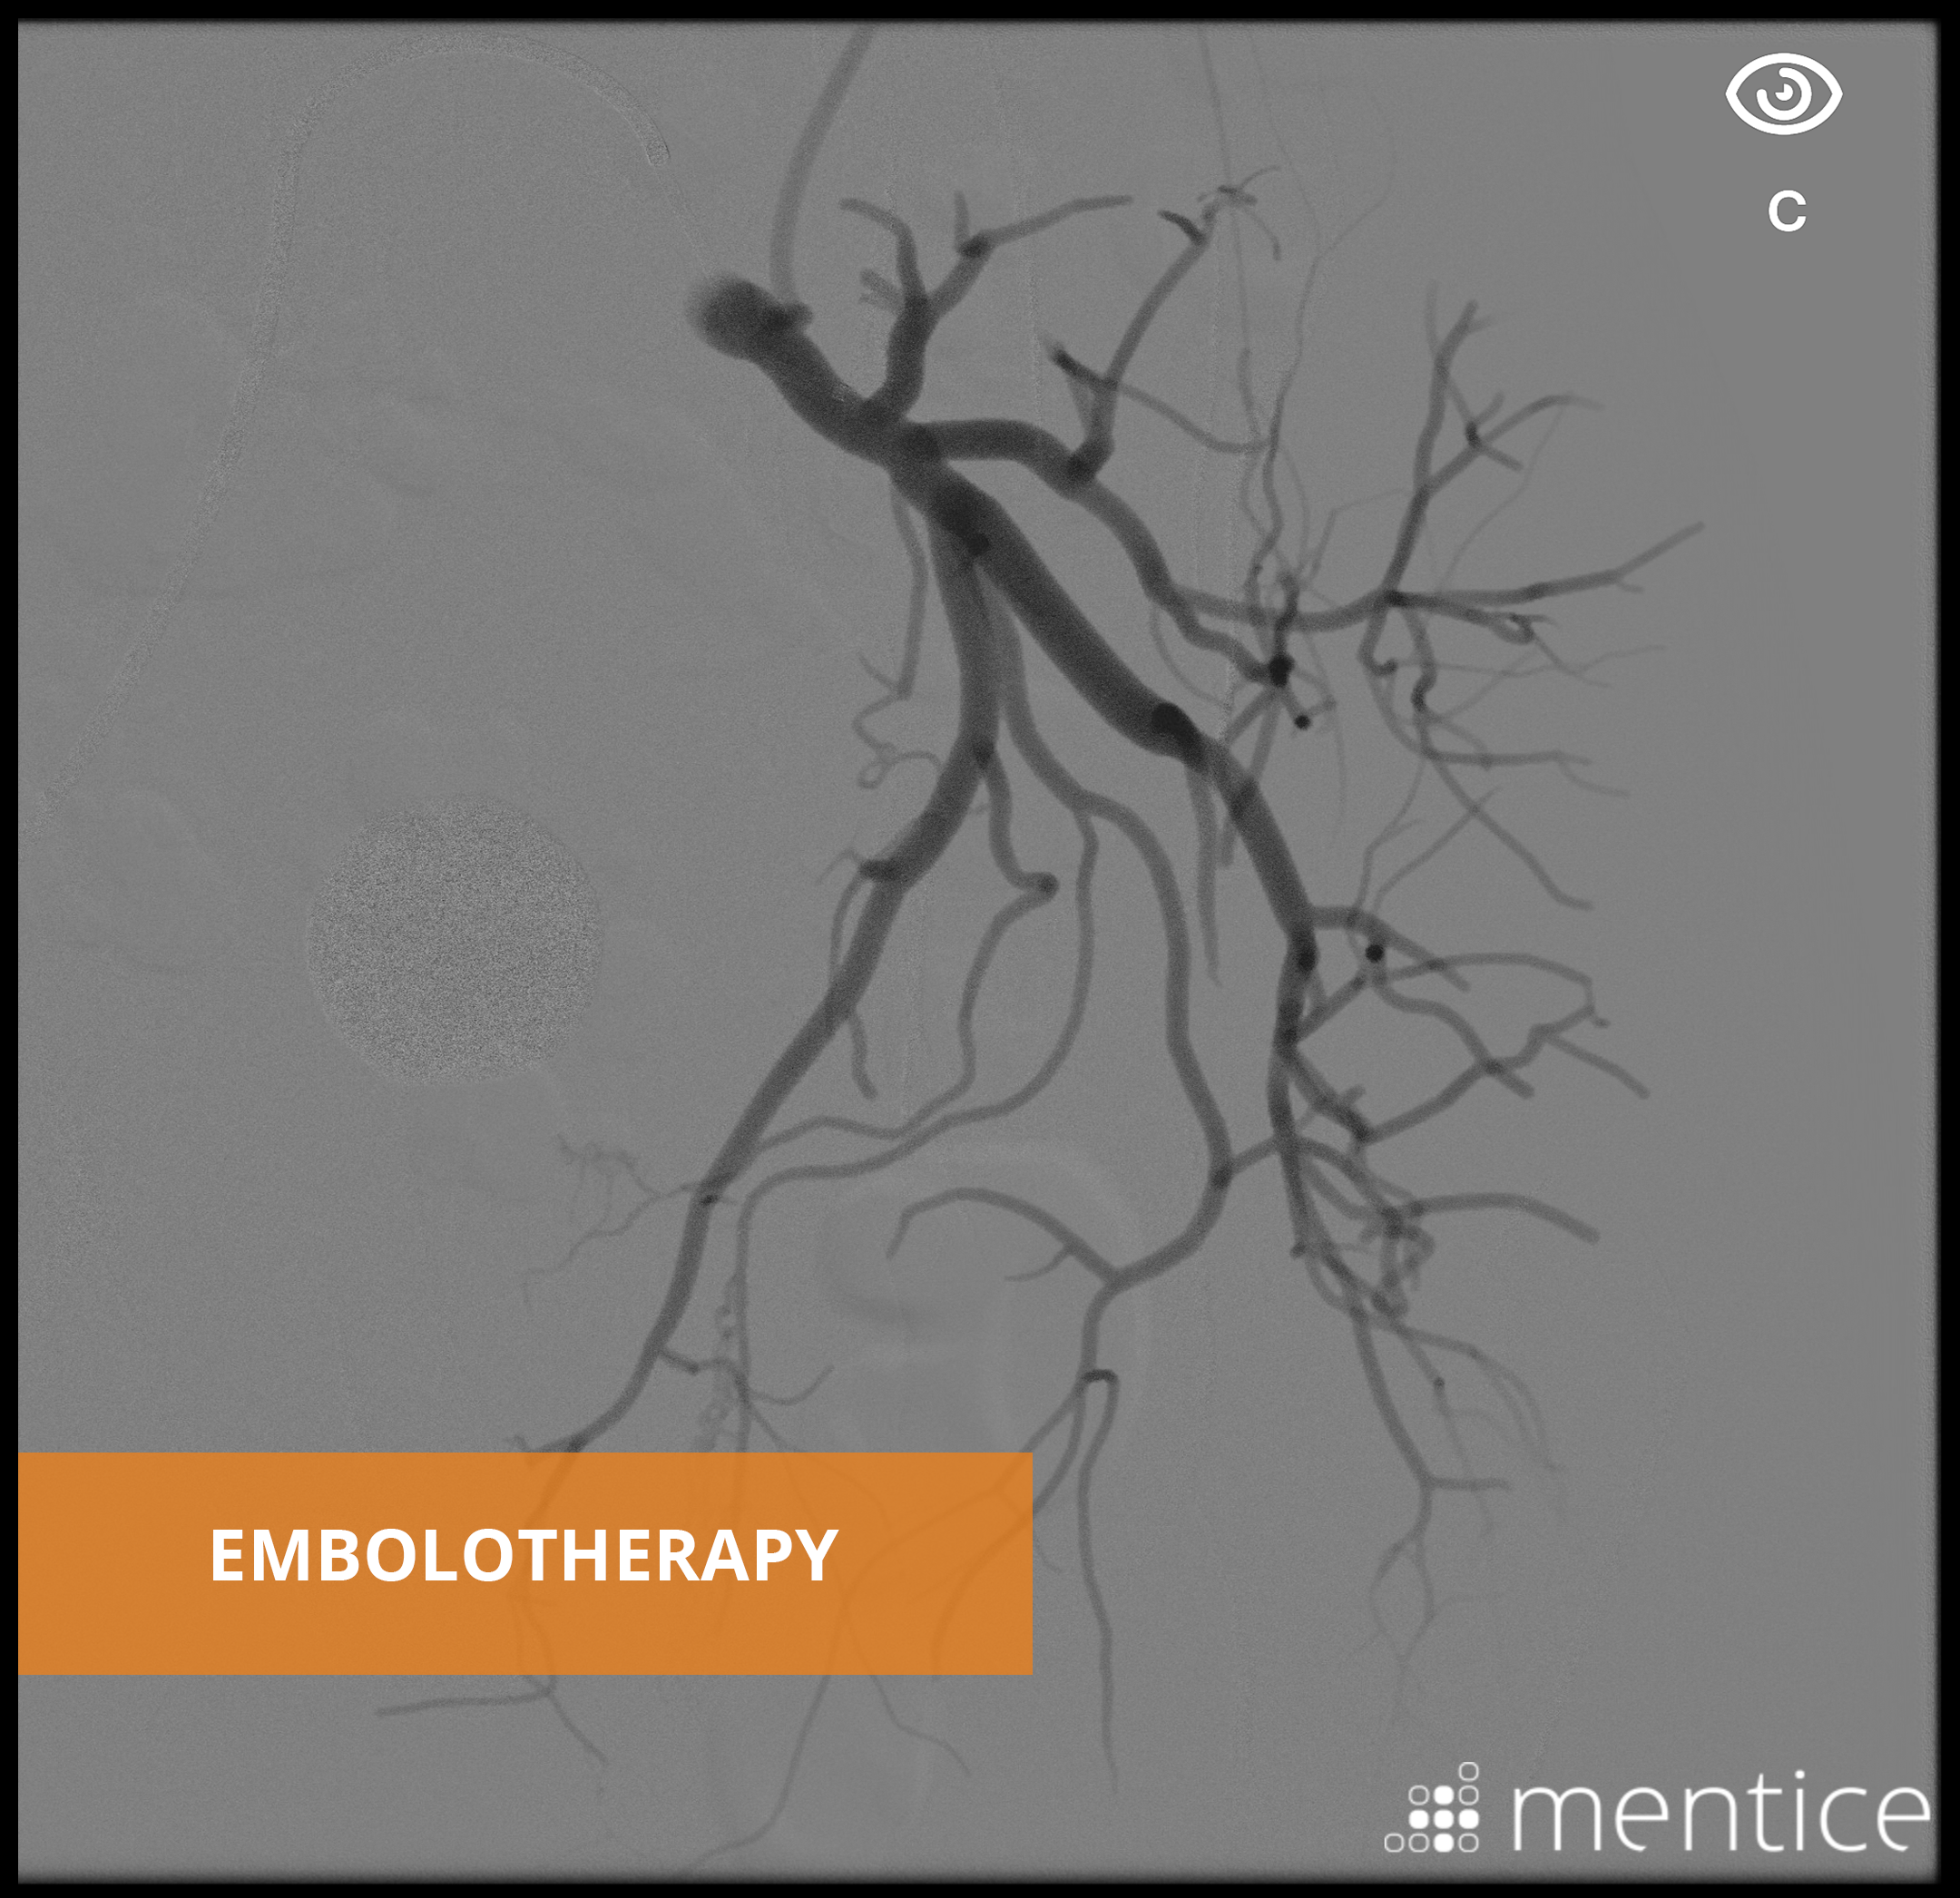 embolotherapy